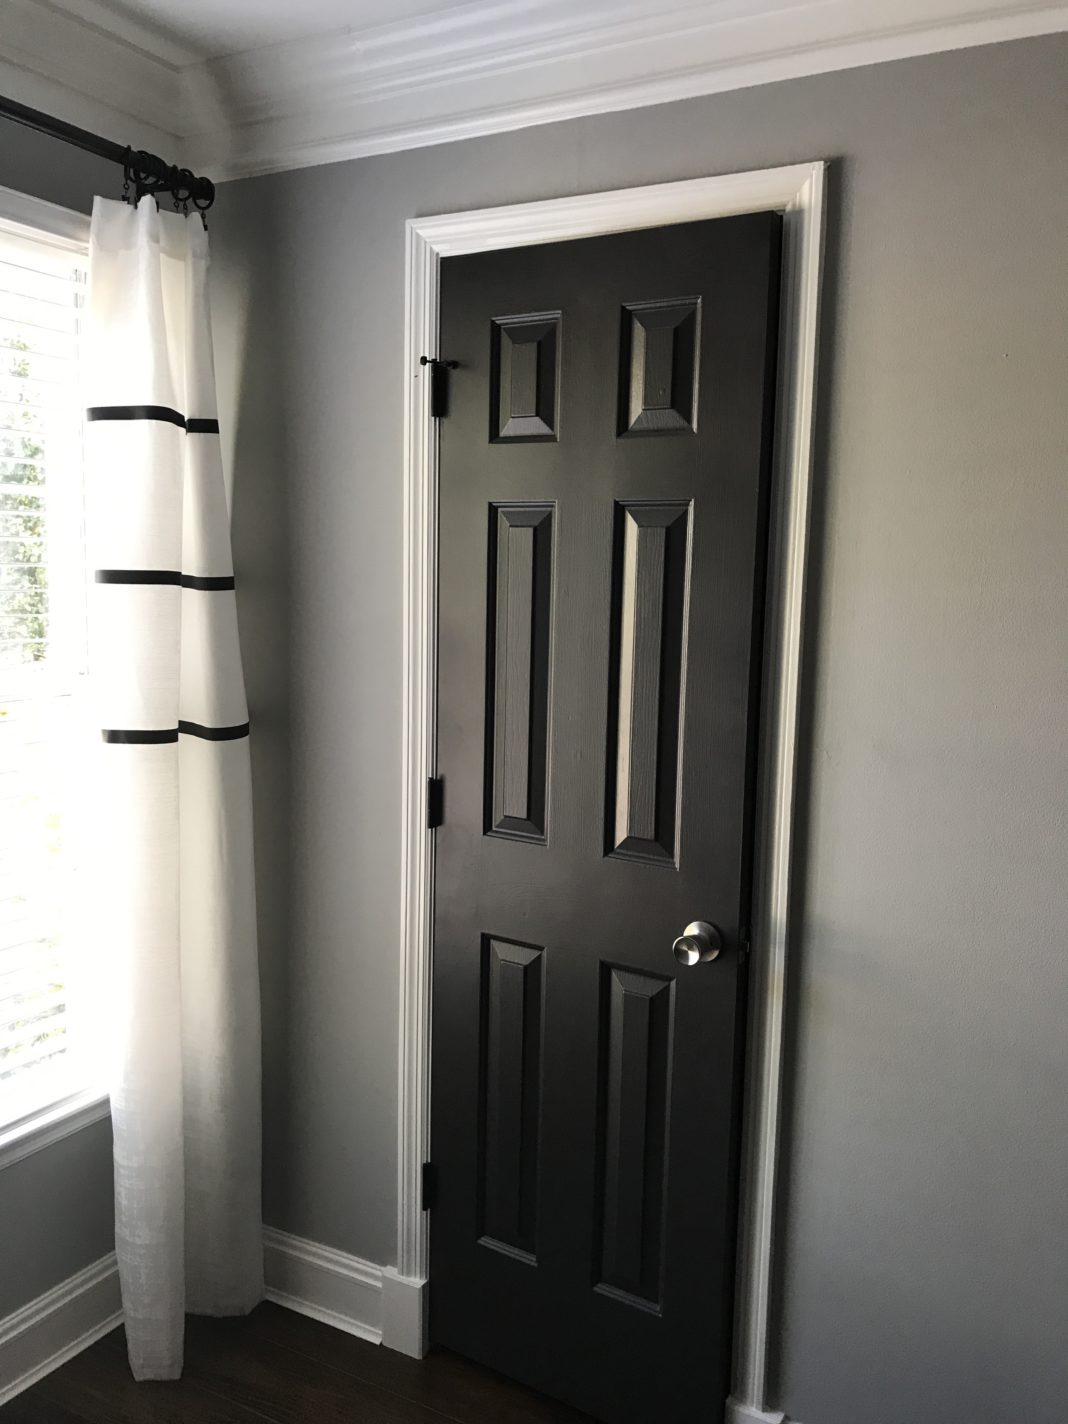 Black Interior Doors | Dark Interior Doors| Benjamin Moore Mopboard Black Paint Color | Modern Room Updates for Cheap